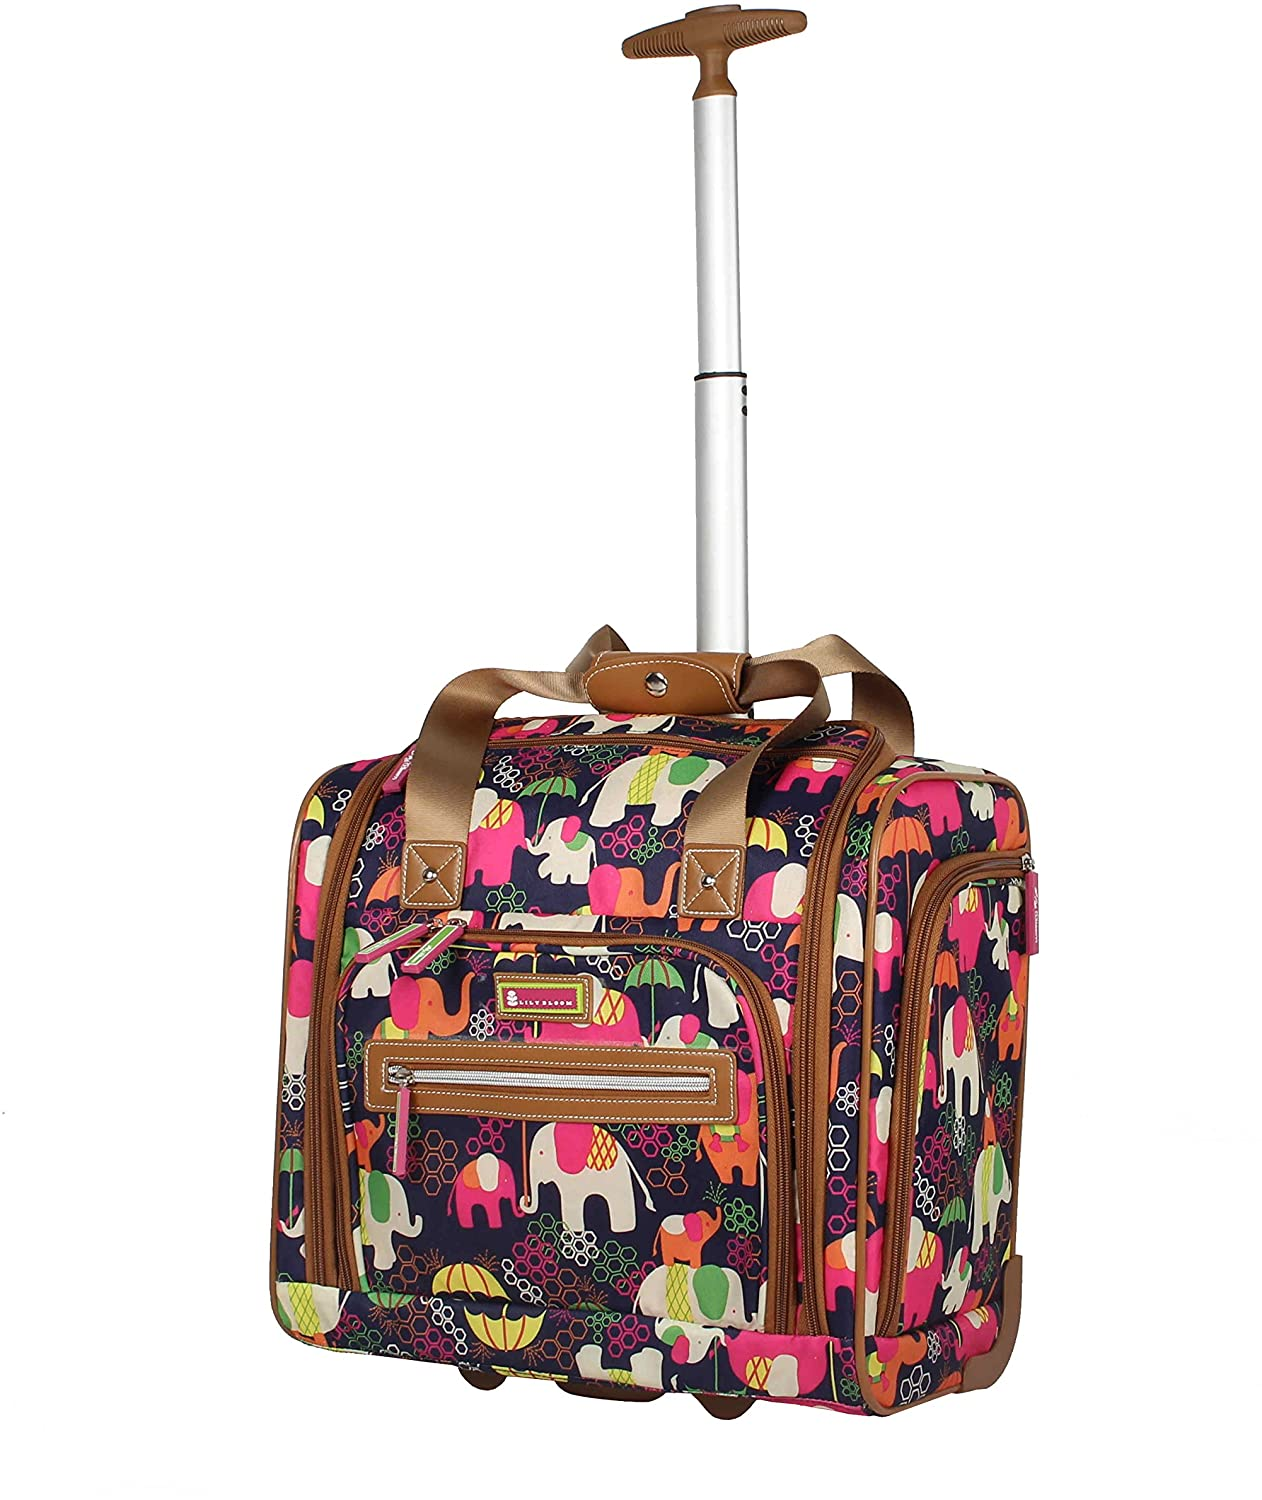 Lily Bloom Designer 15 Inch Carry On